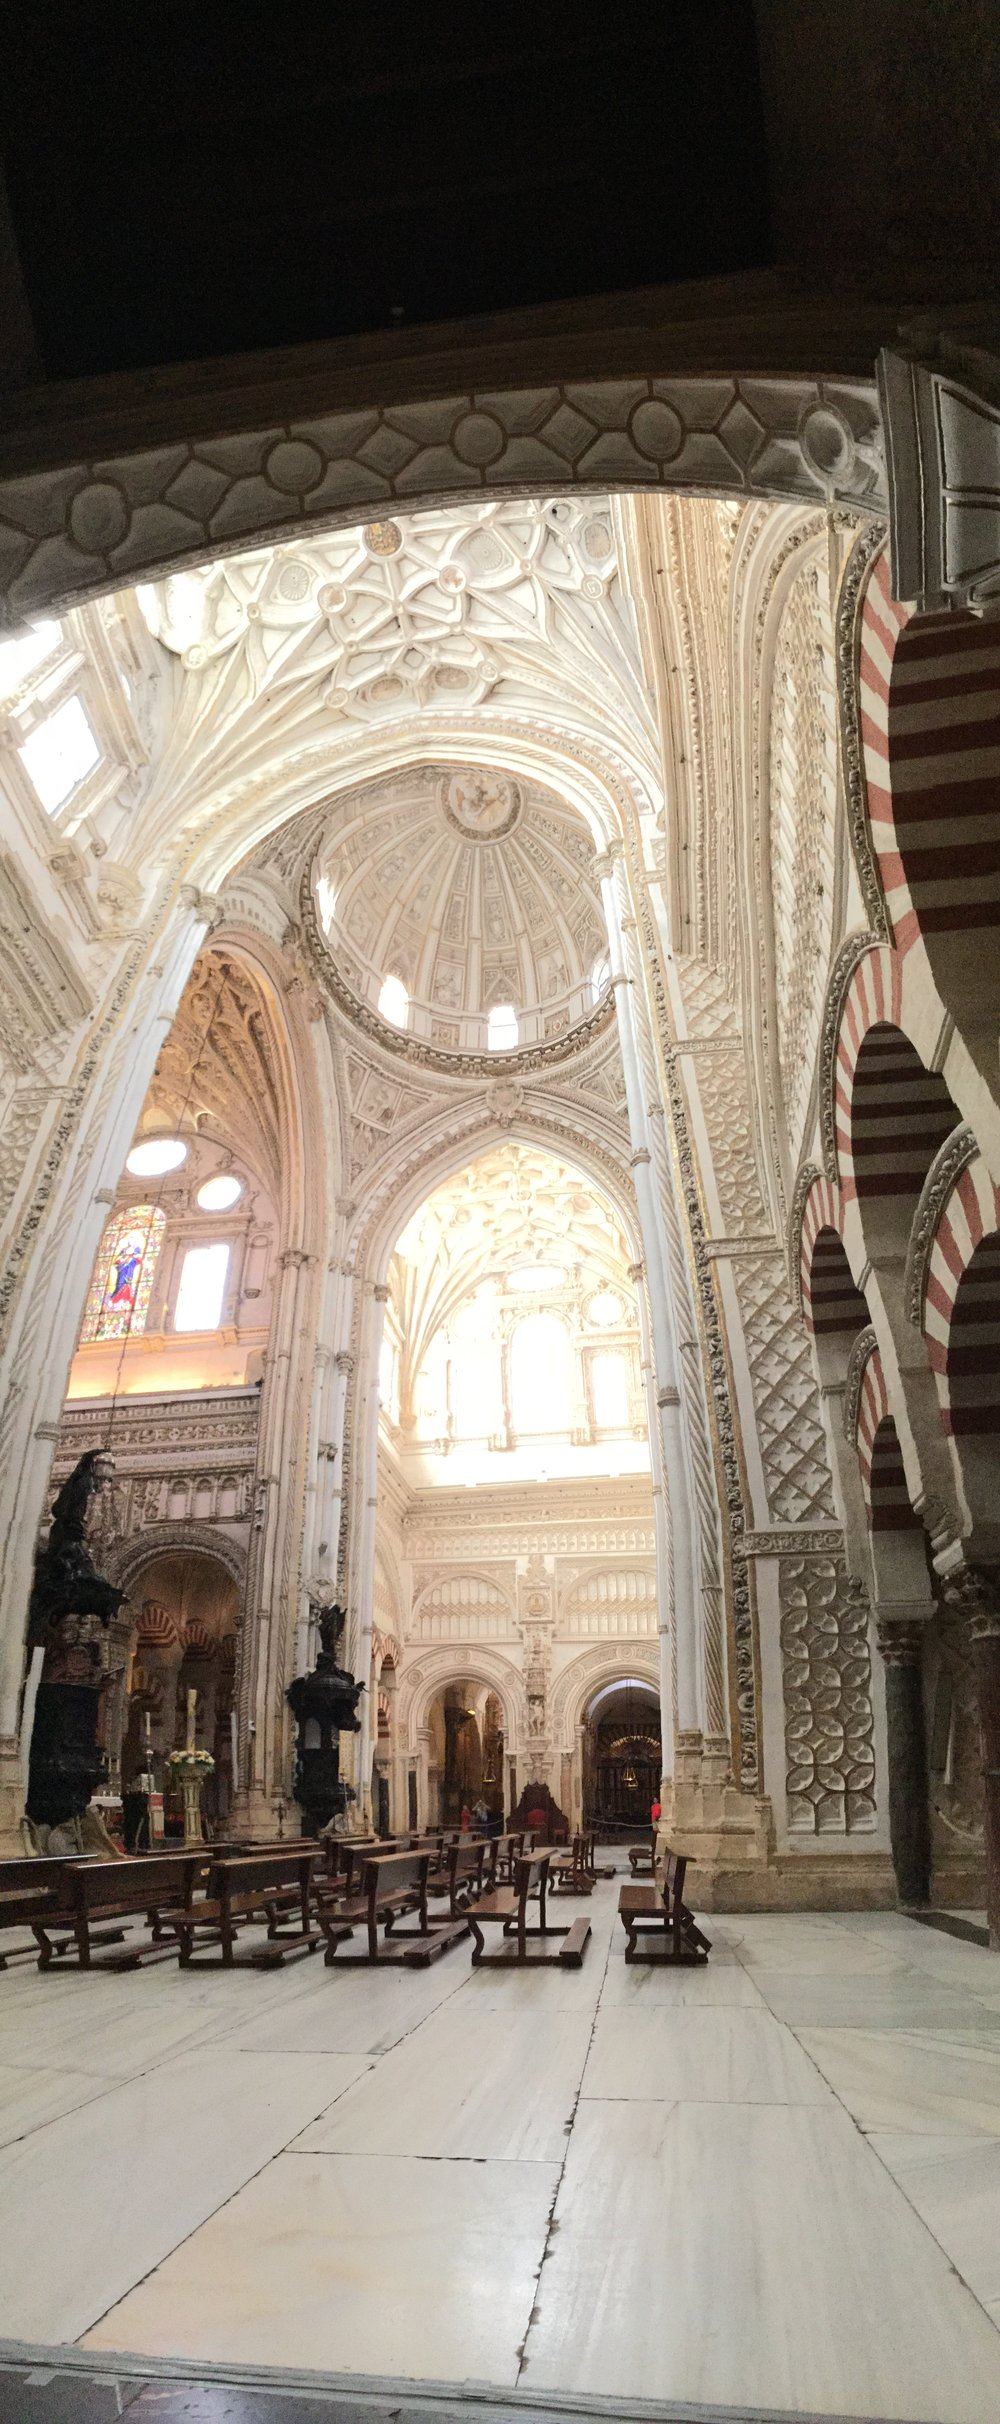 This here is a vertical interior panorama to show the height of the cathedral. Lili took this picture!